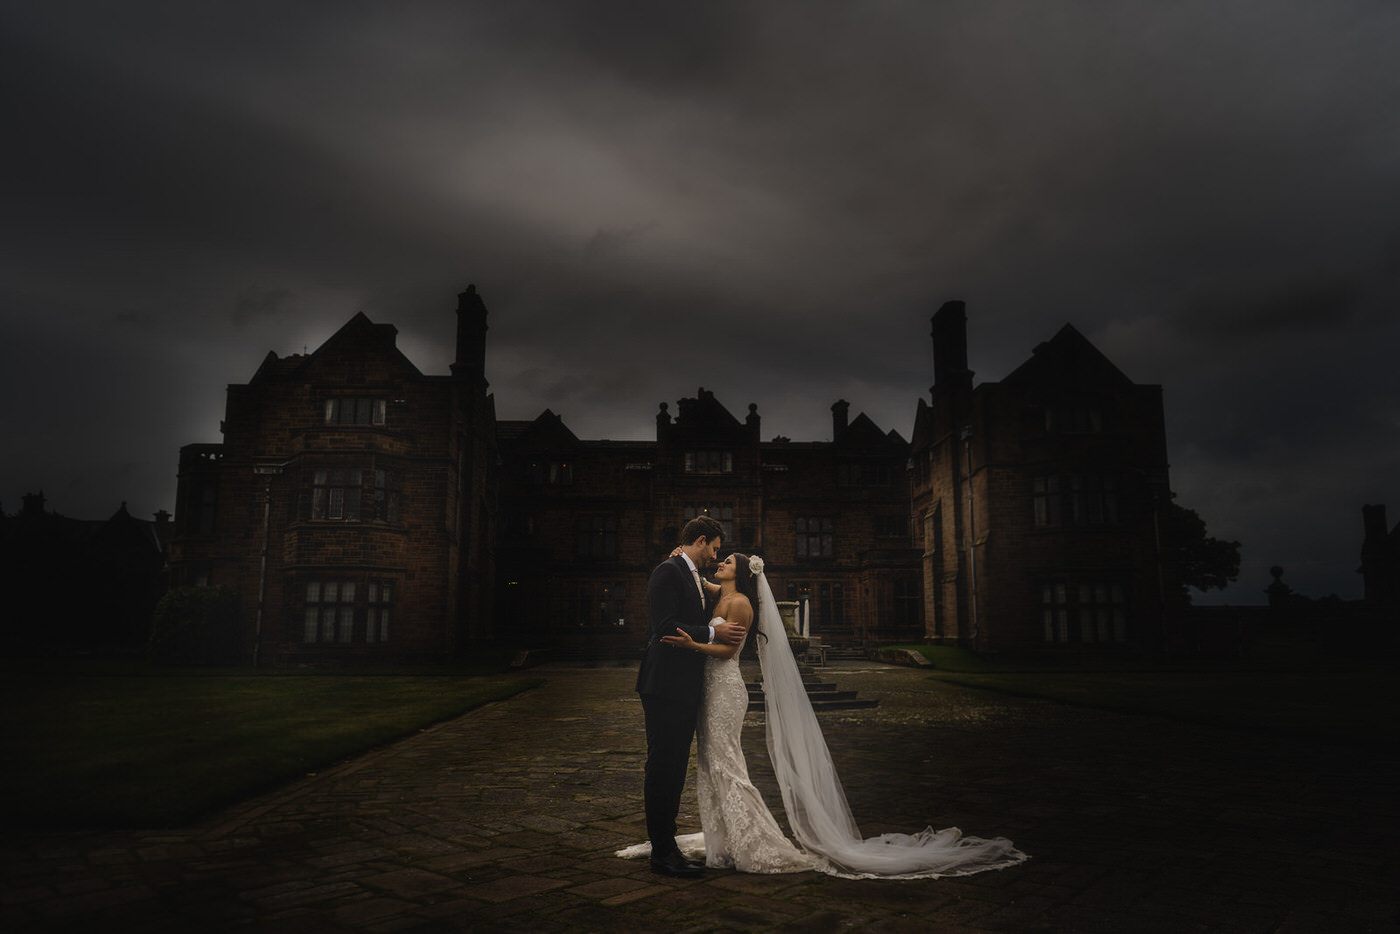 The stunning bride and her groom in front of Thornton Manor